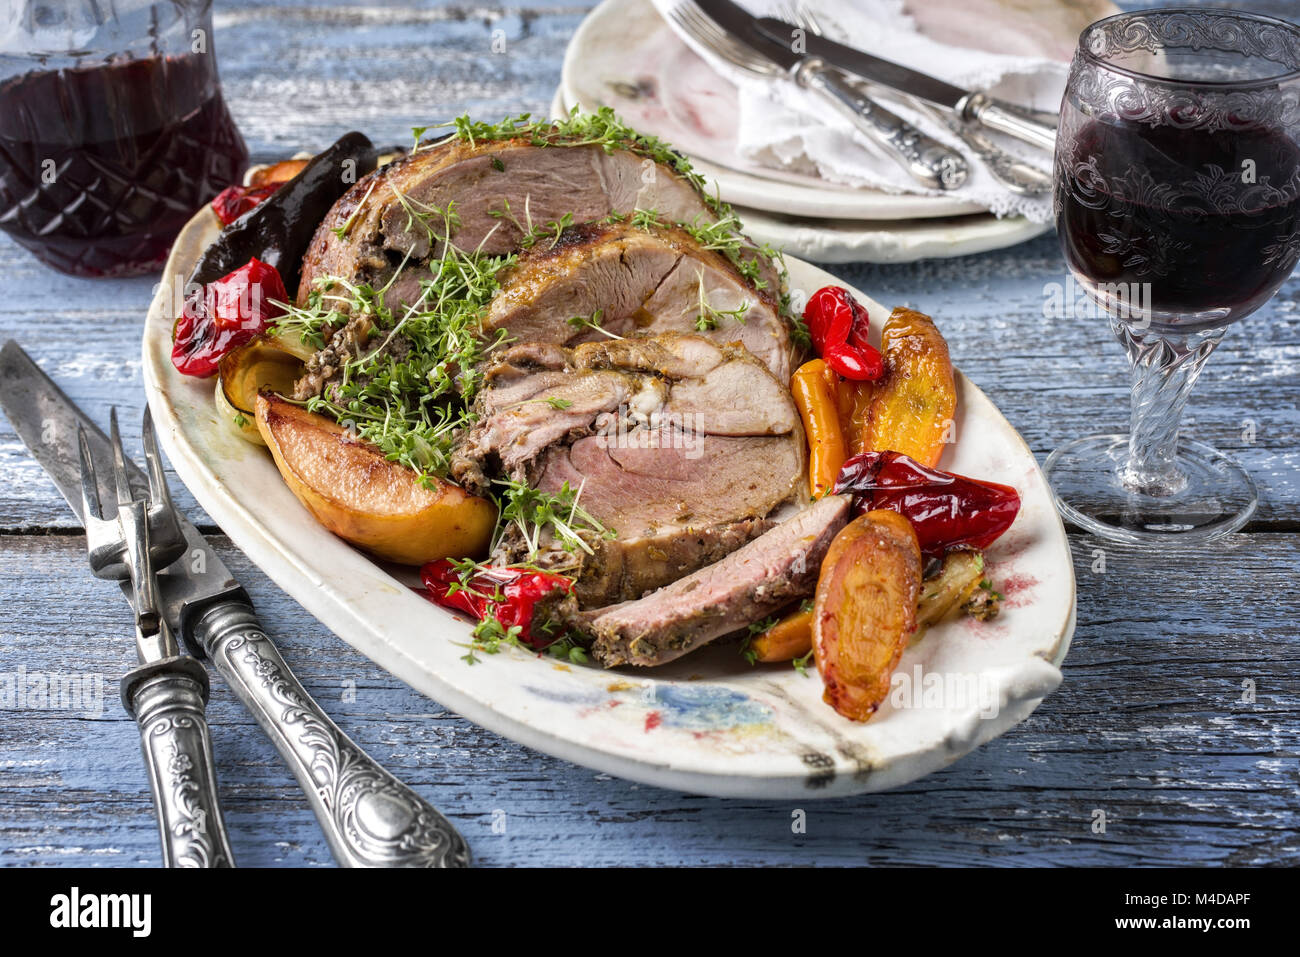 Leg of Lamb with Vegetables and Fruits - Stock Image